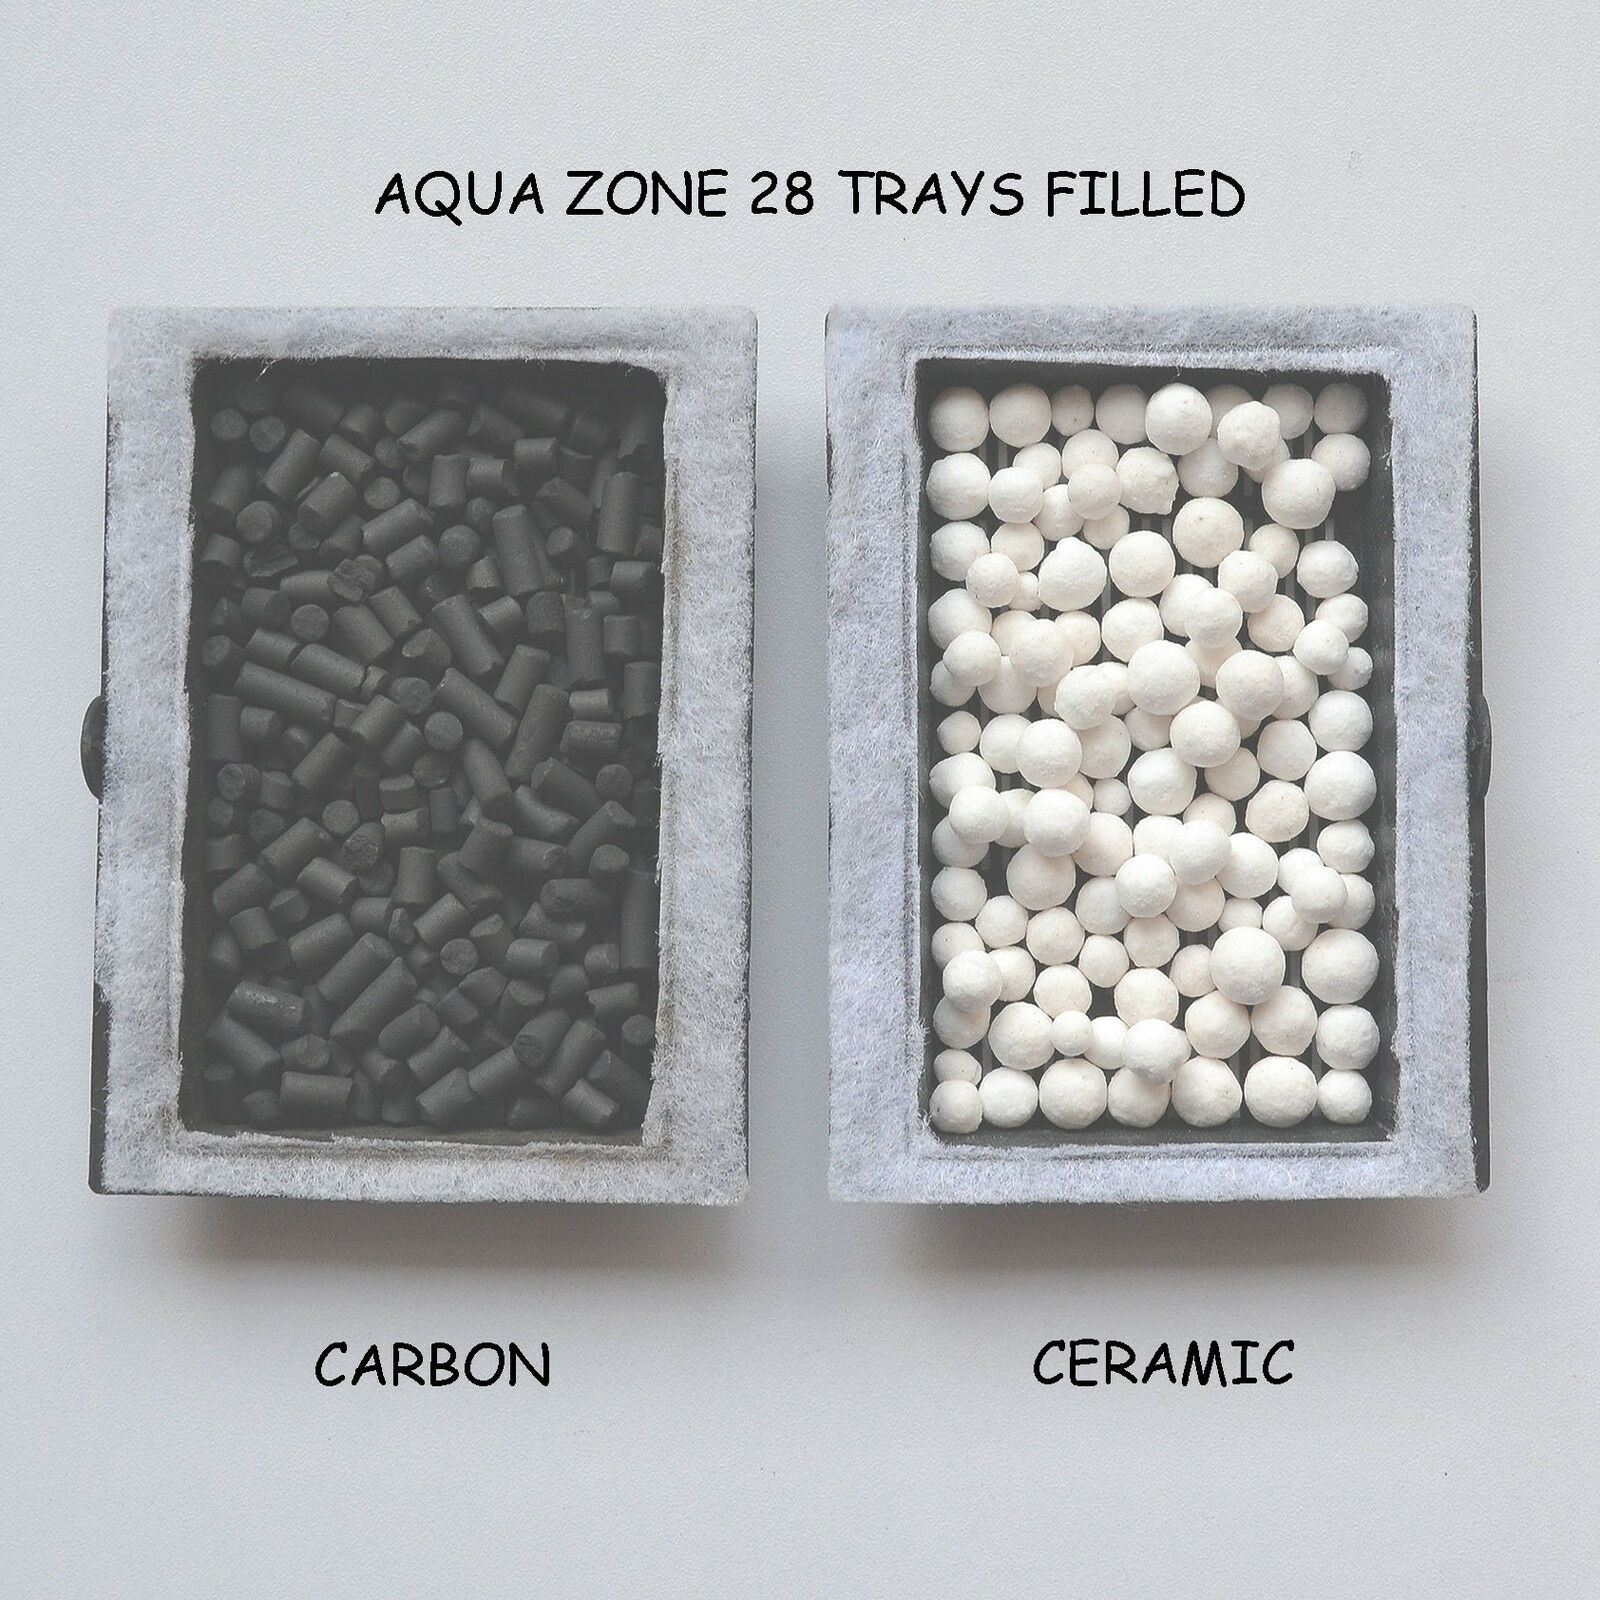 5 X Bj Filters Compatible Aqua Zone 28 - Carbon / Ceramic Kits  6 Months Supply